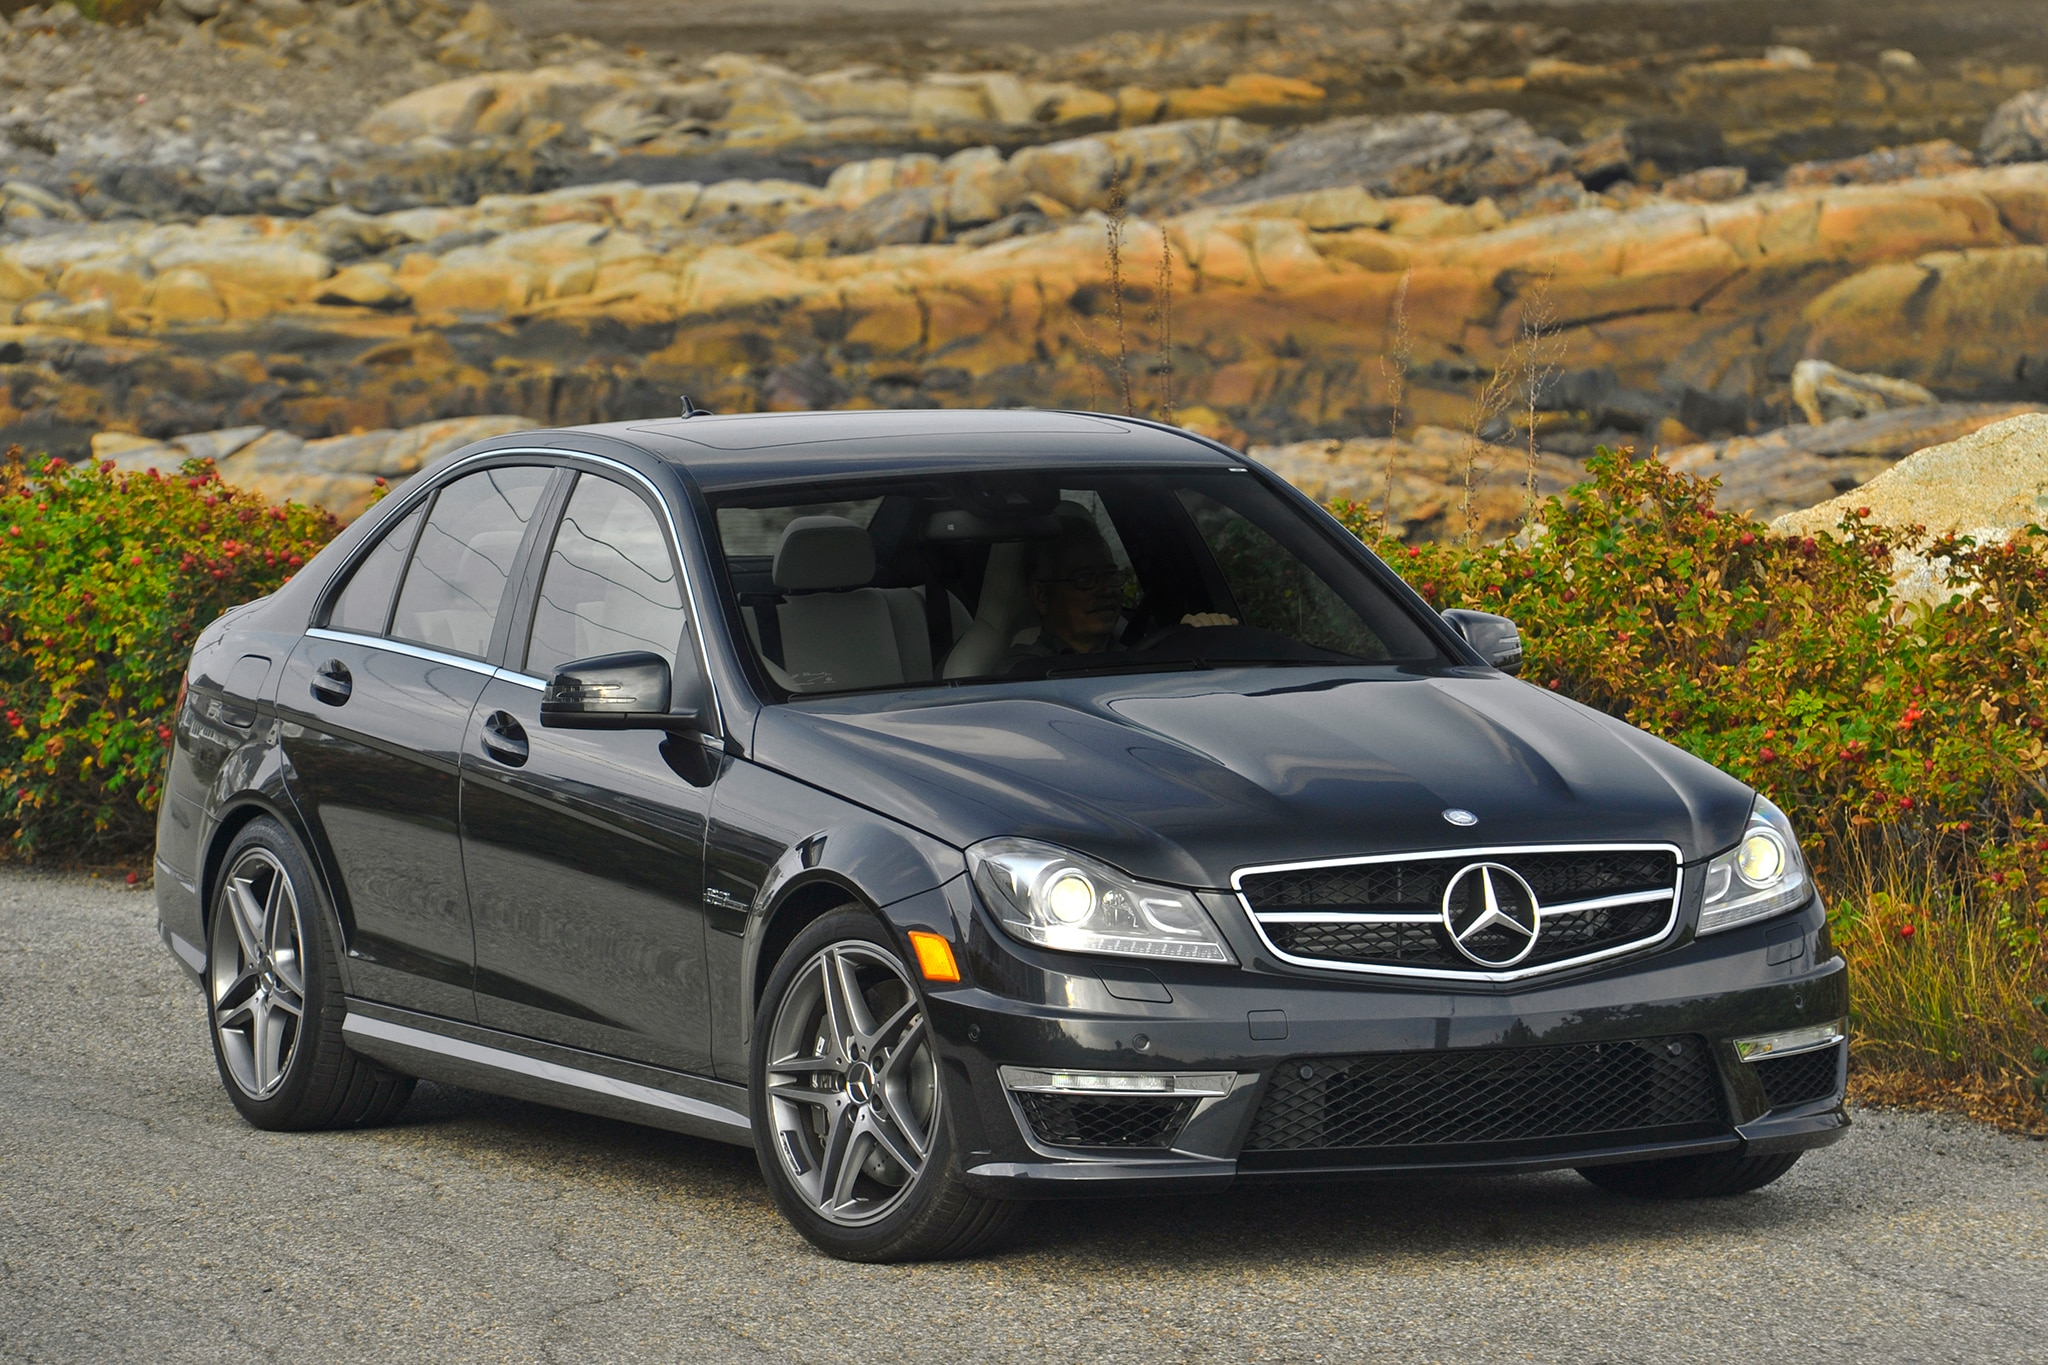 2013 mercedes benz c300 4matic gains power economy m for 2013 mercedes benz c class c300